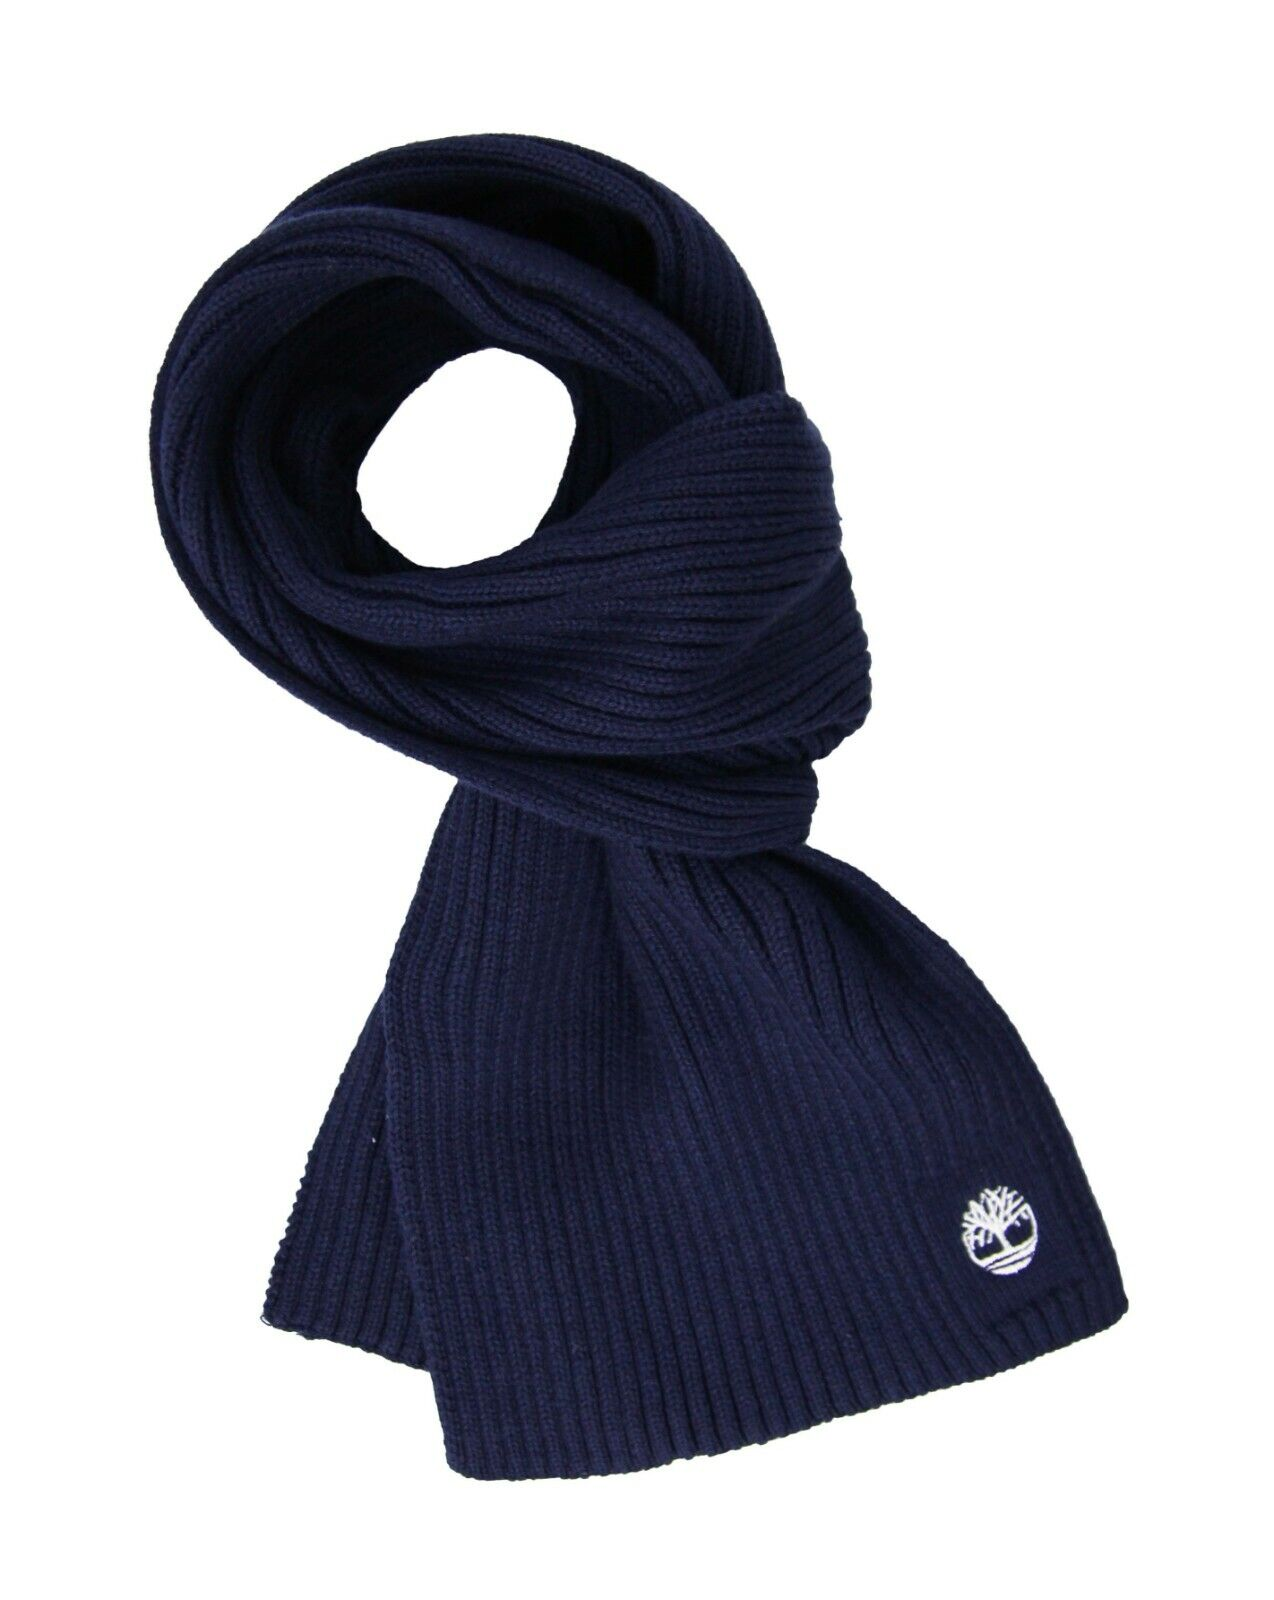 Timberland Basic Ribbed Scarf Navy Winter Youths Juniors Scarves T0288 410 A25A